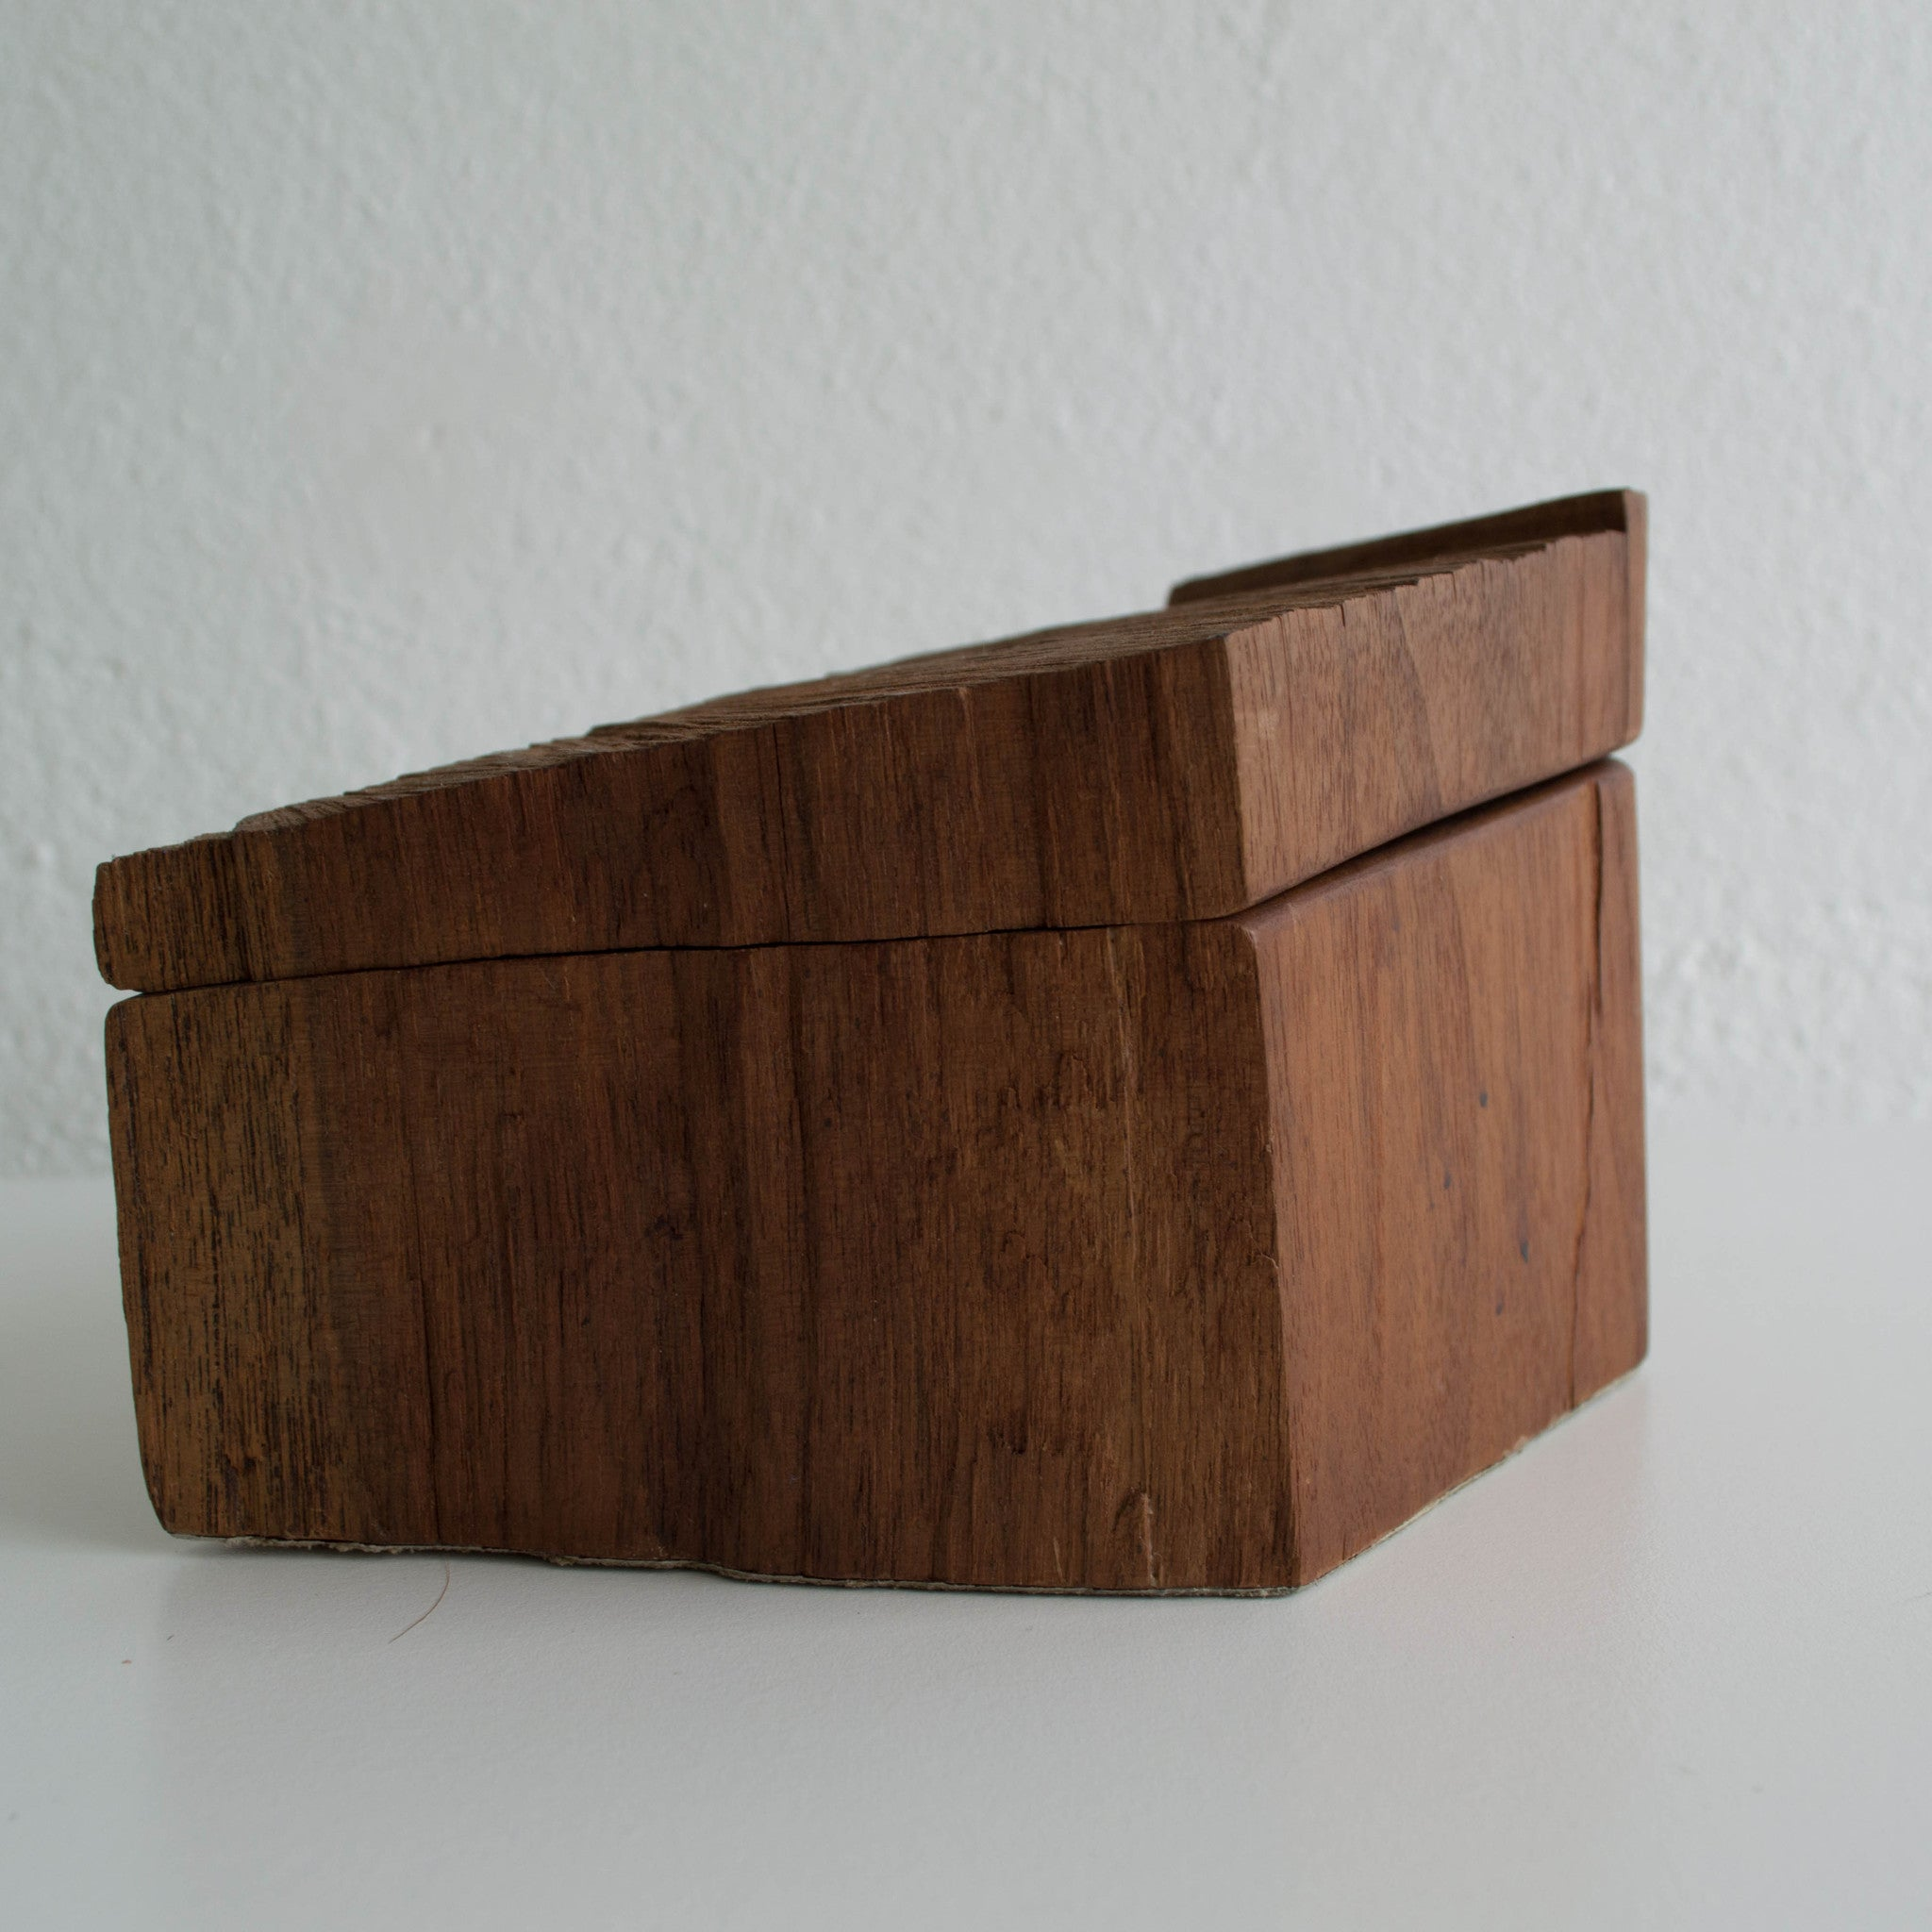 Handcrafted Wooden Live Edge Box